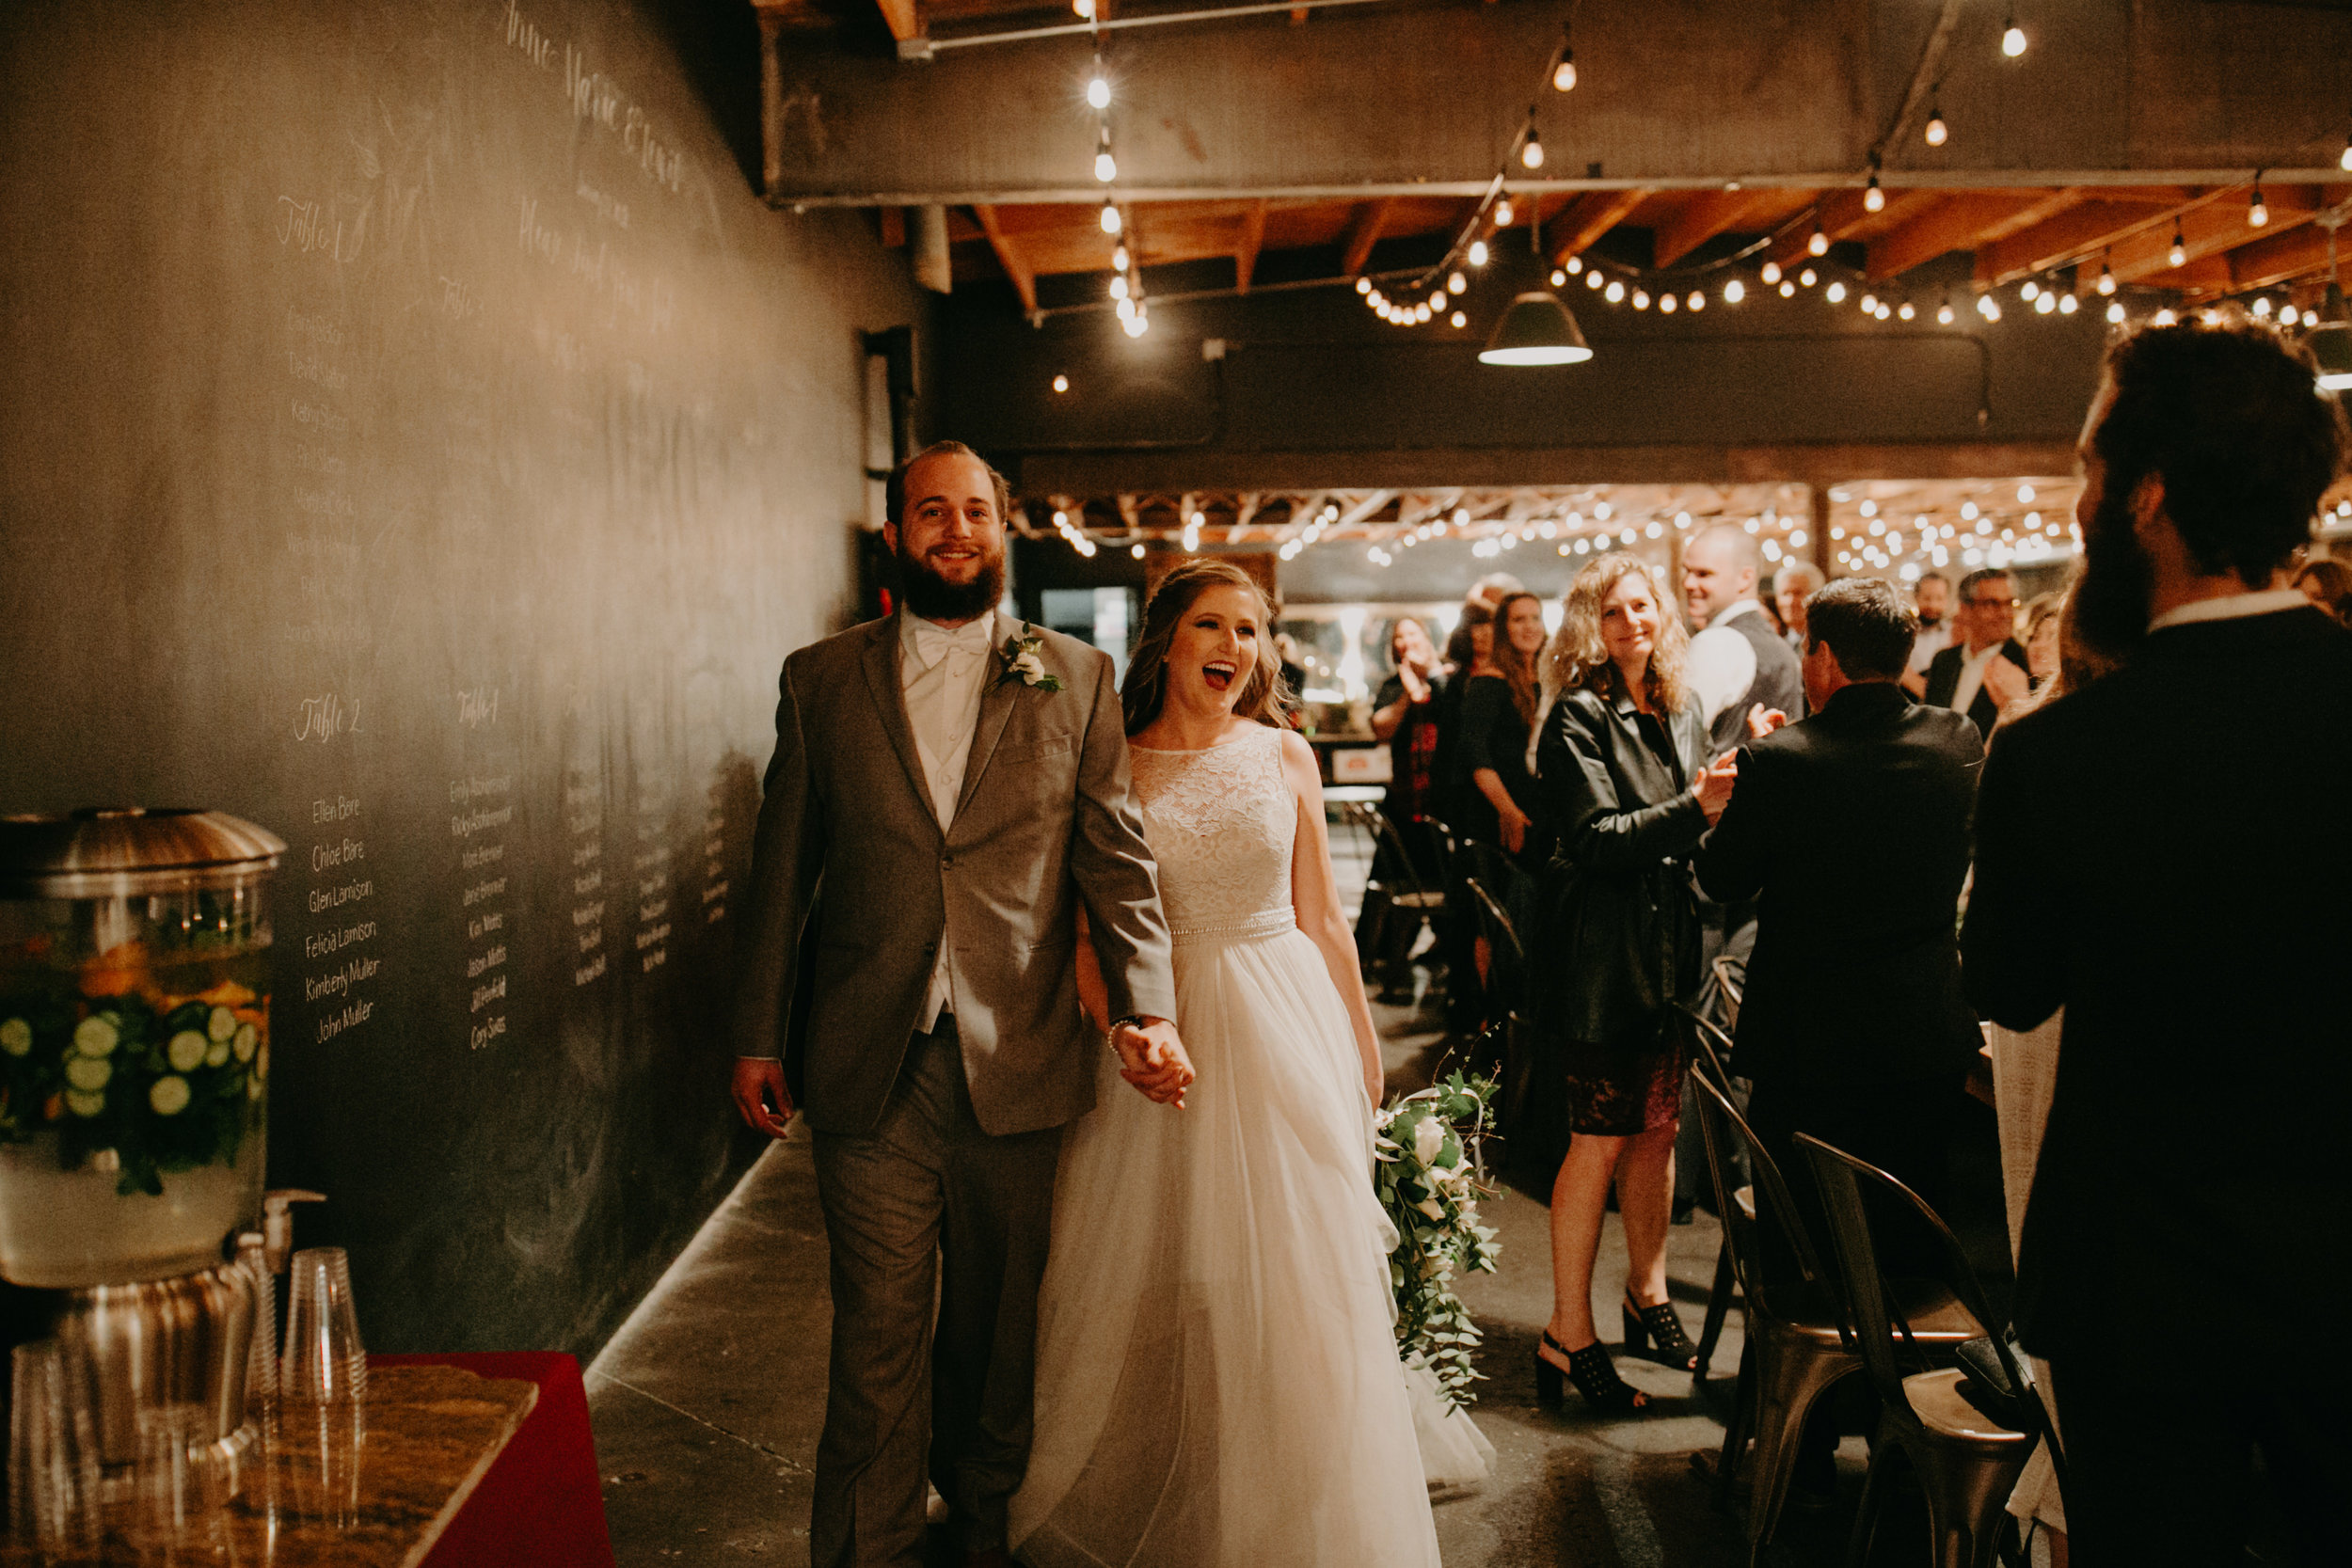 Smoky Hollow Studios Wedding Anne & Lewis Emily Magers Photography-729.jpg